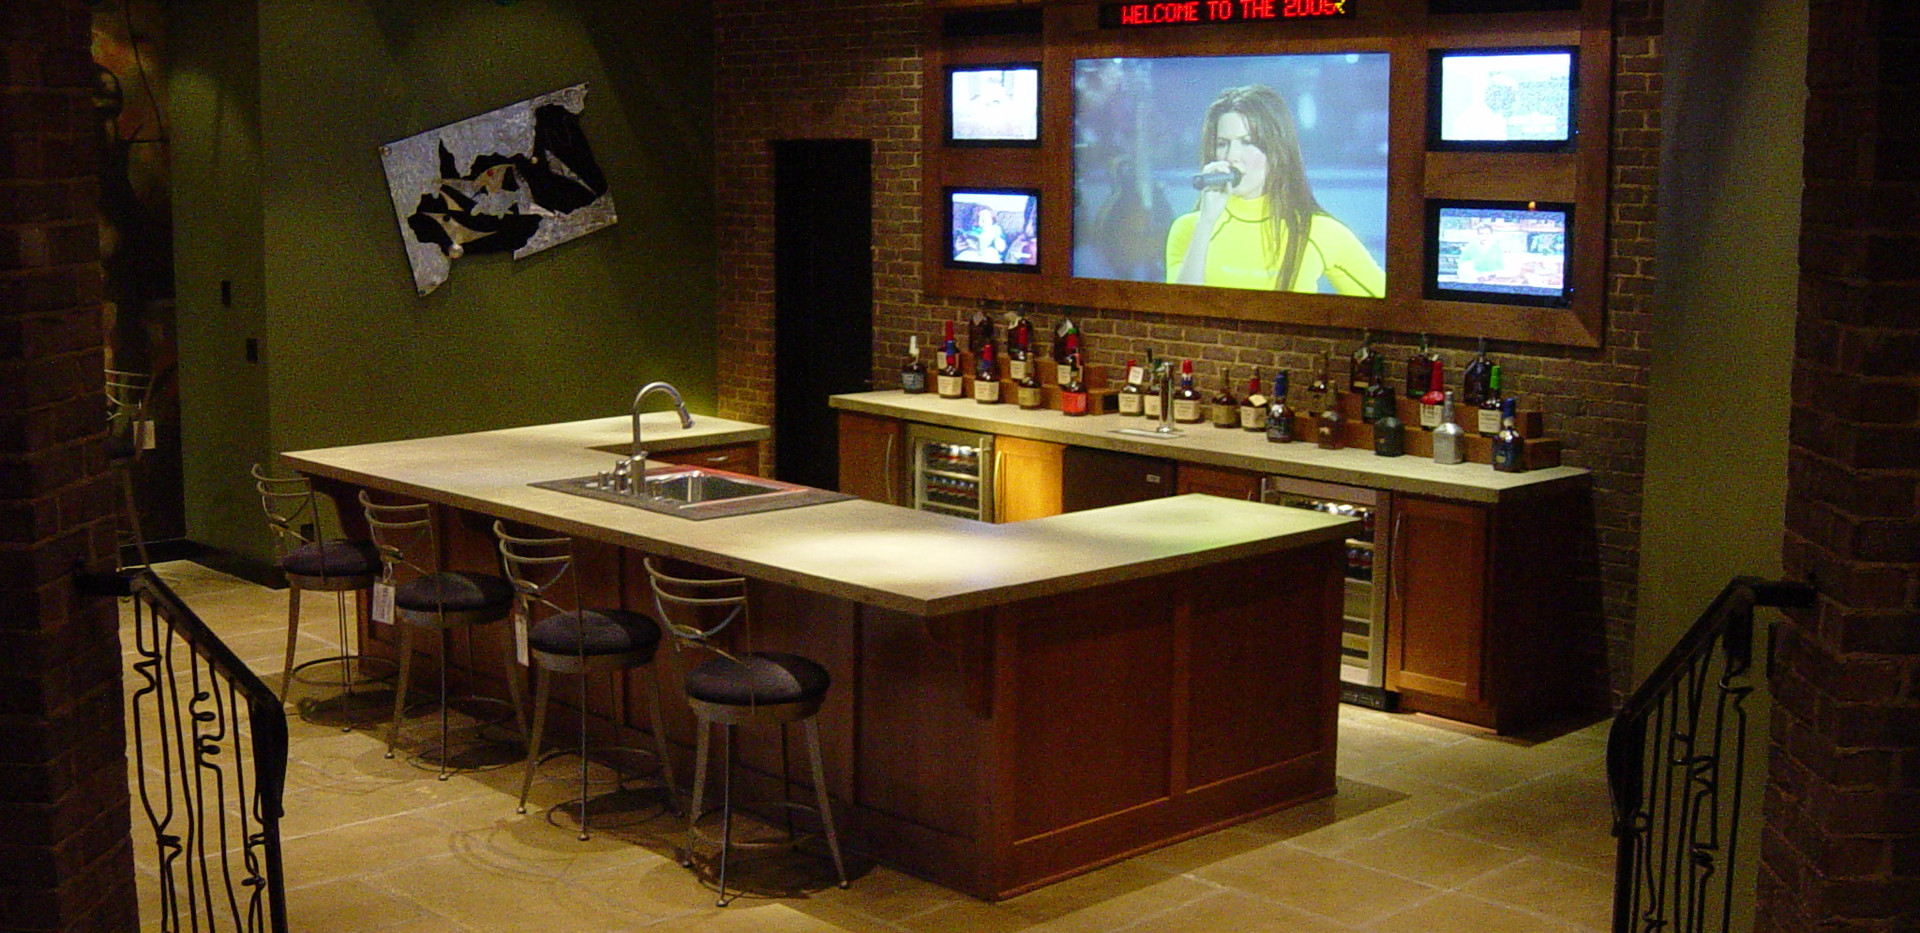 The ultimate basement with rear projection main screen, four other televisions for the perfect sports bar atmosphere.  Concrete countertops, beverage centers, kegerator and more make this THE place to hang out.